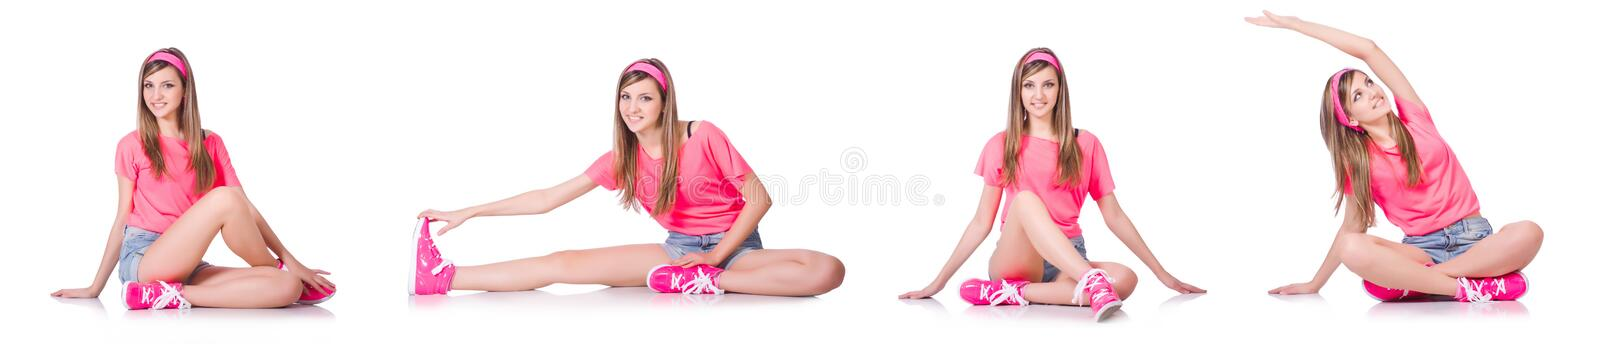 The young woman doing exercises on white royalty free stock photo